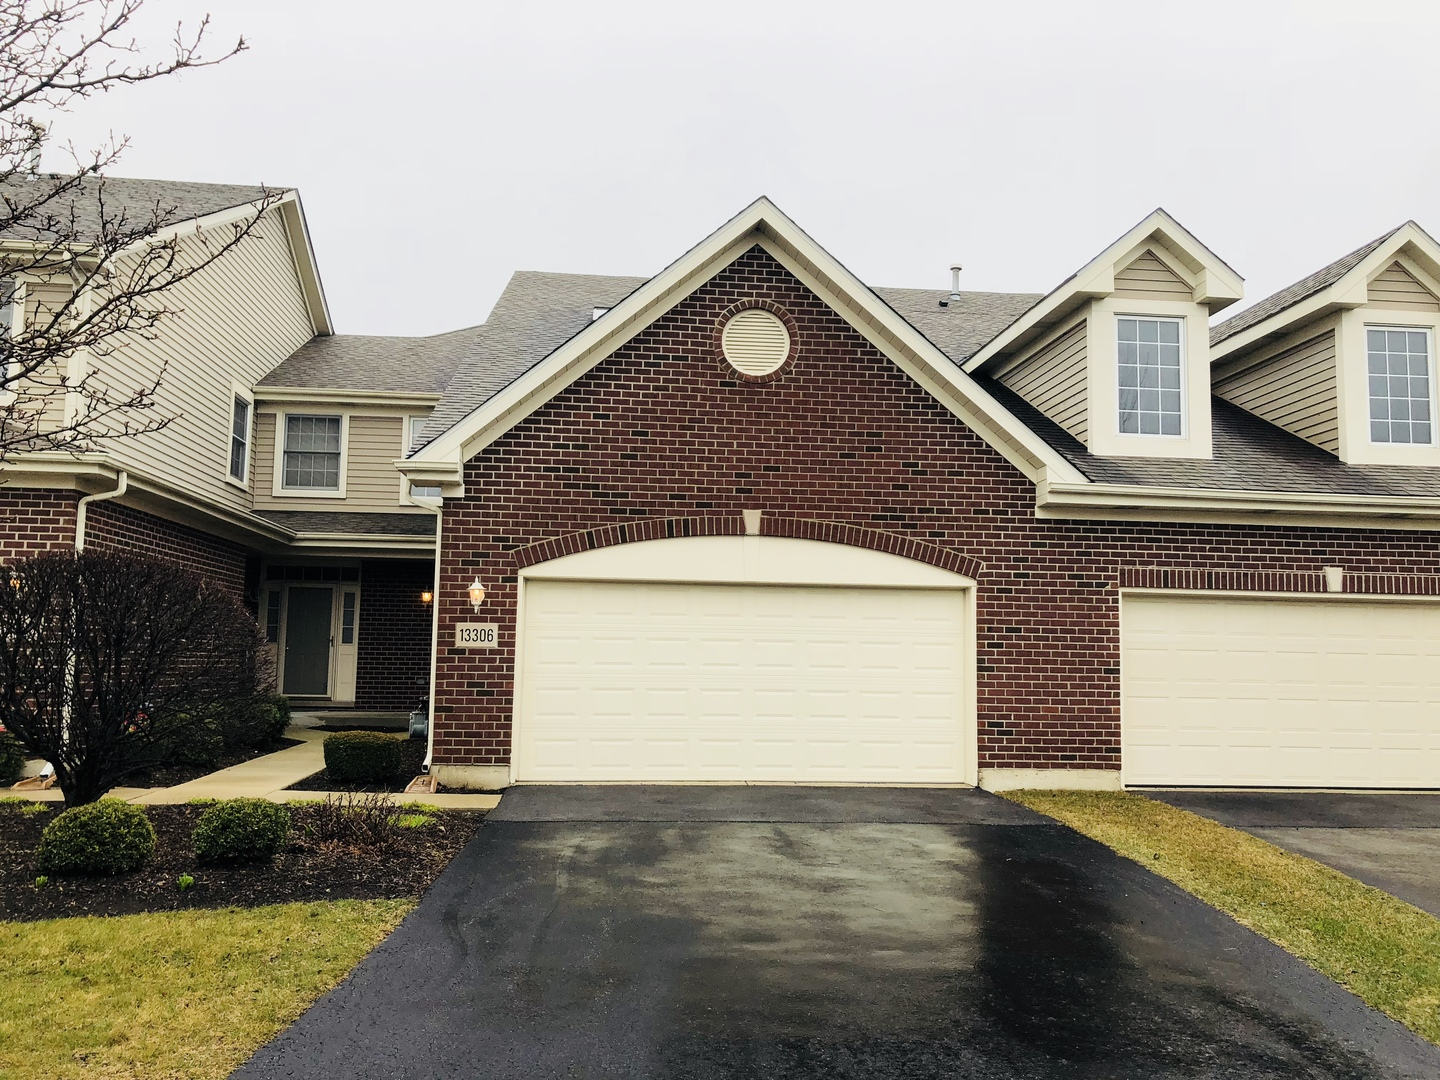 13306 Greenleaf Court, Palos Heights in Cook County, IL 60463 Home for Sale